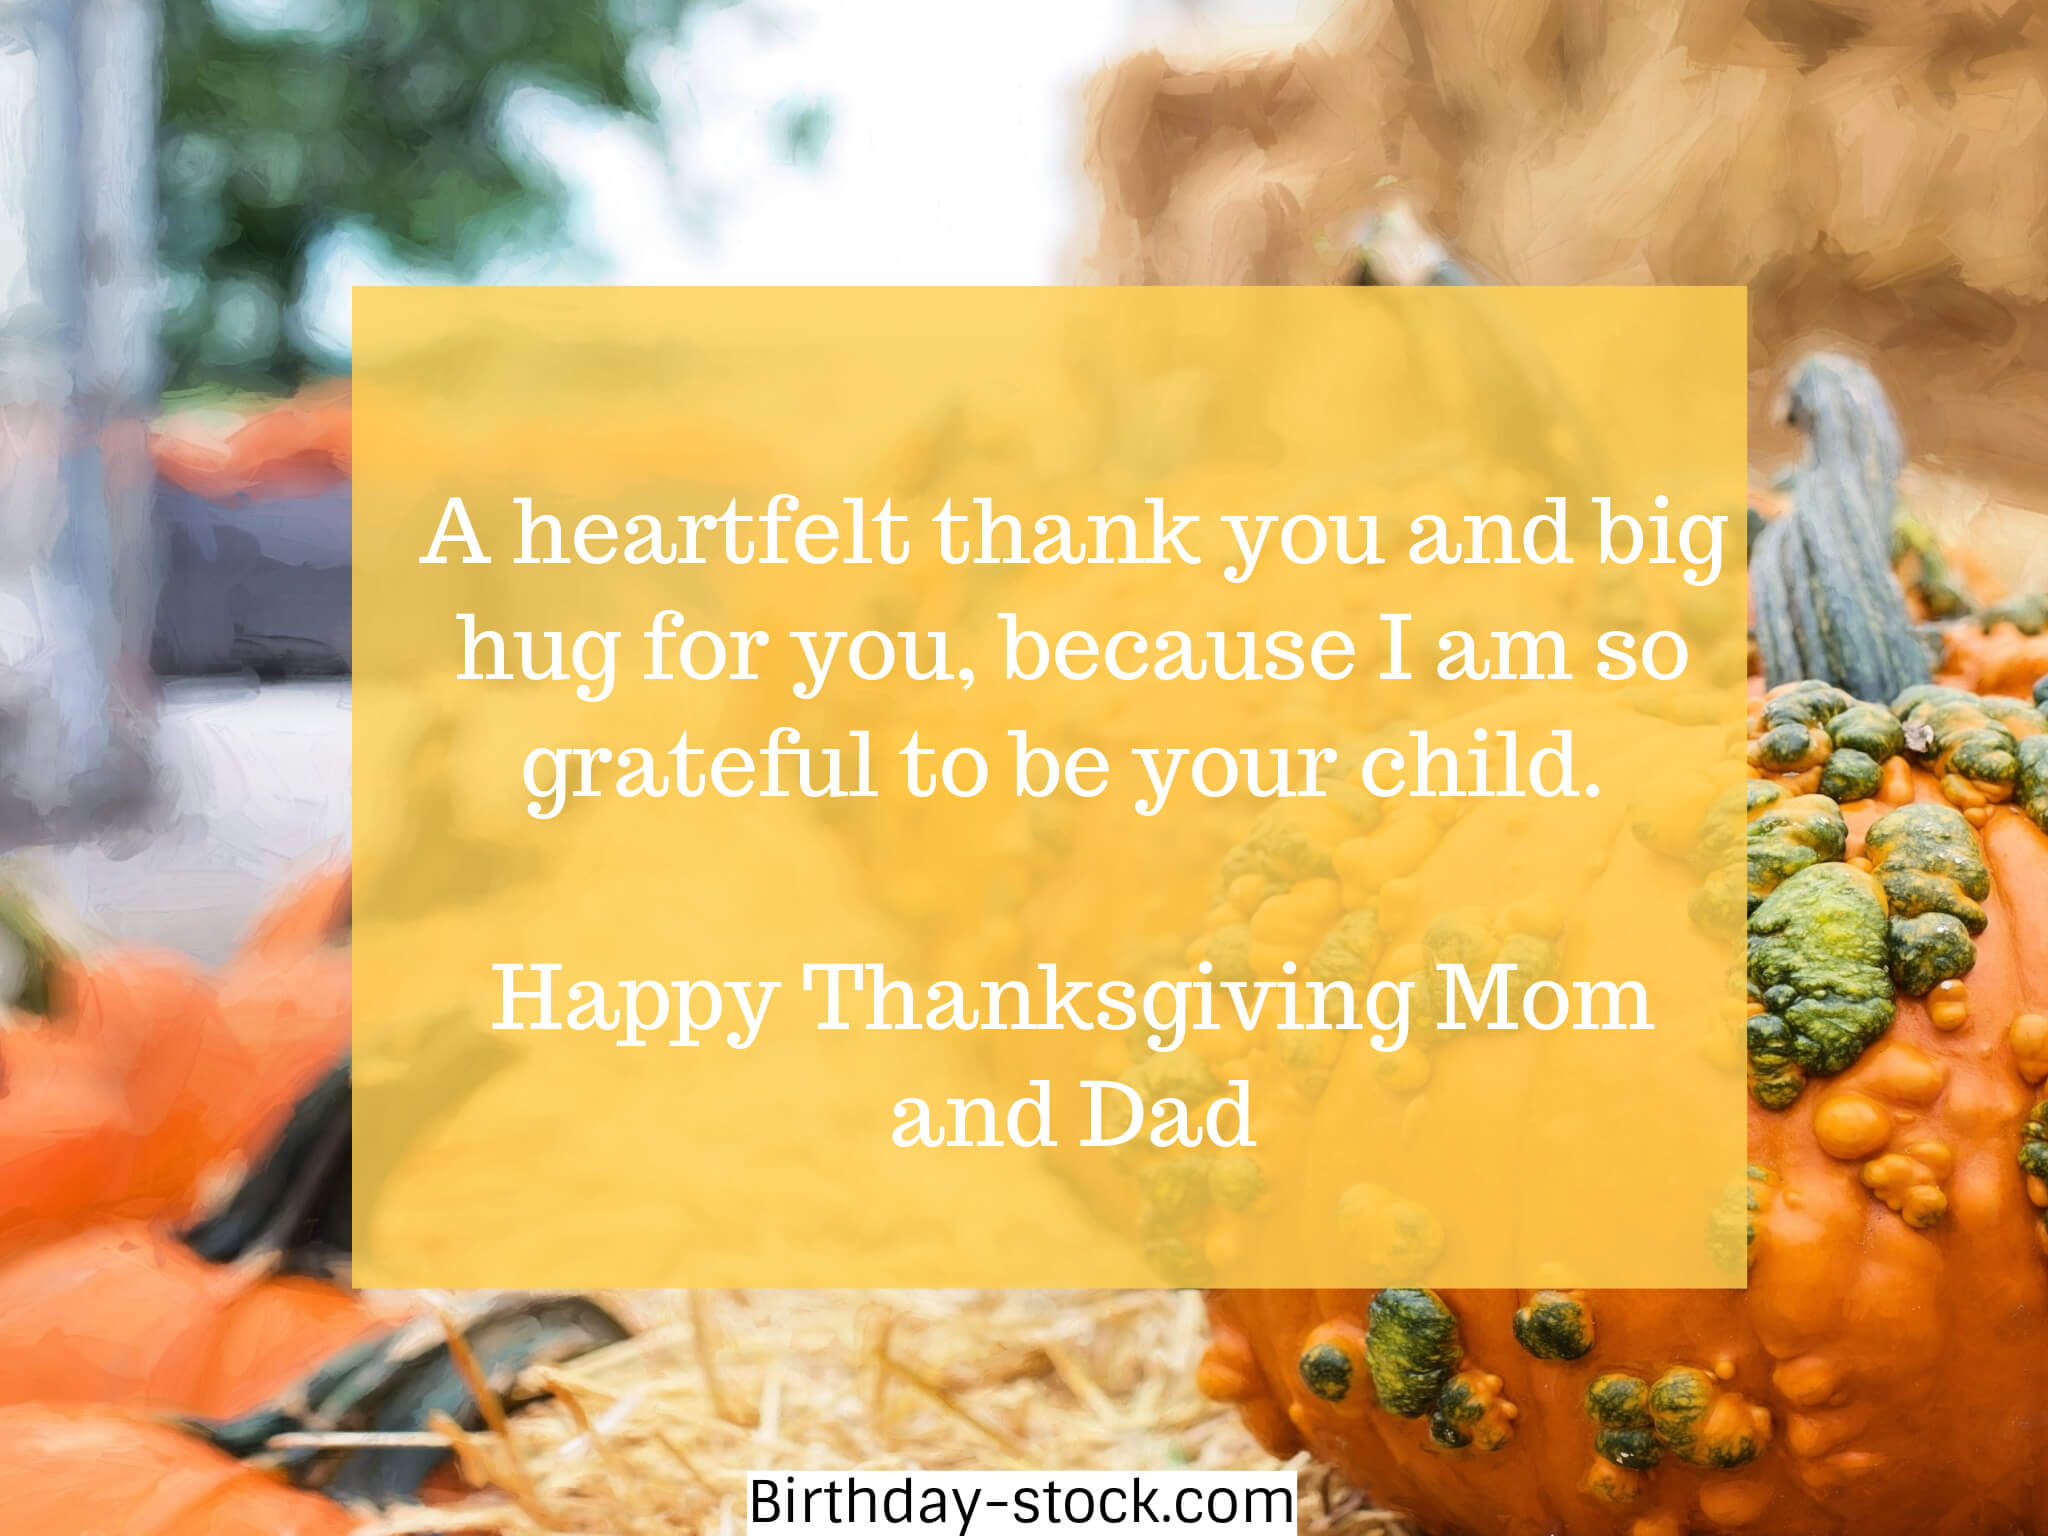 Thanksgiving Wishes for Mom and Dad